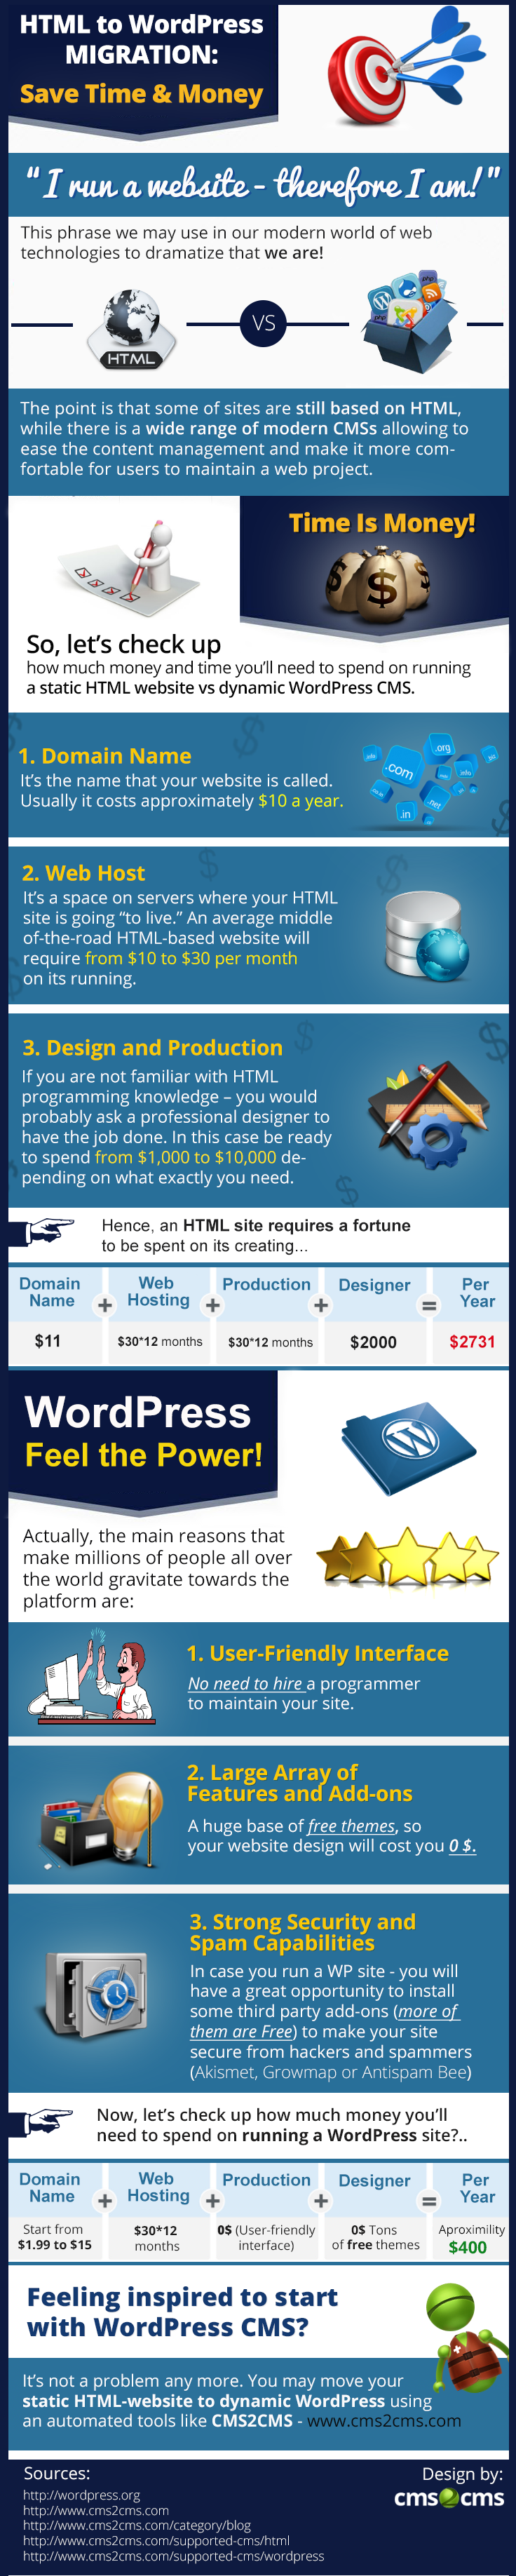 how-much-does-it-cost-to-run-wordpress-website-infographic